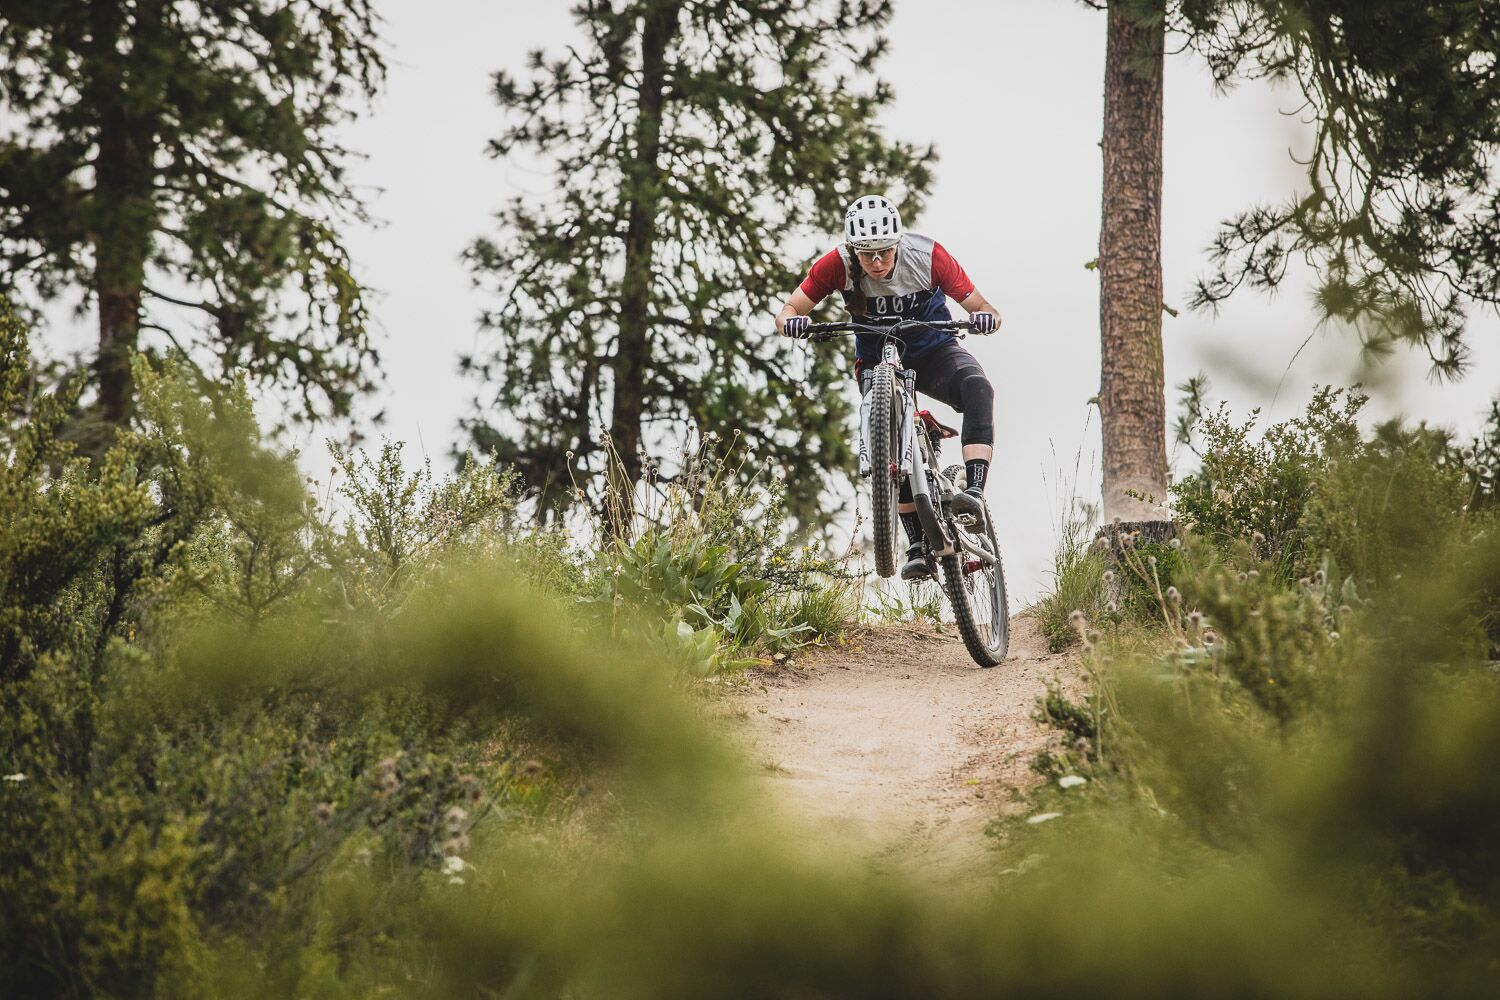 Miranda Miller Has Carried Her DH Mountain Bike Racing Power to the Enduro World Series - Singletracks Mountain Bike News